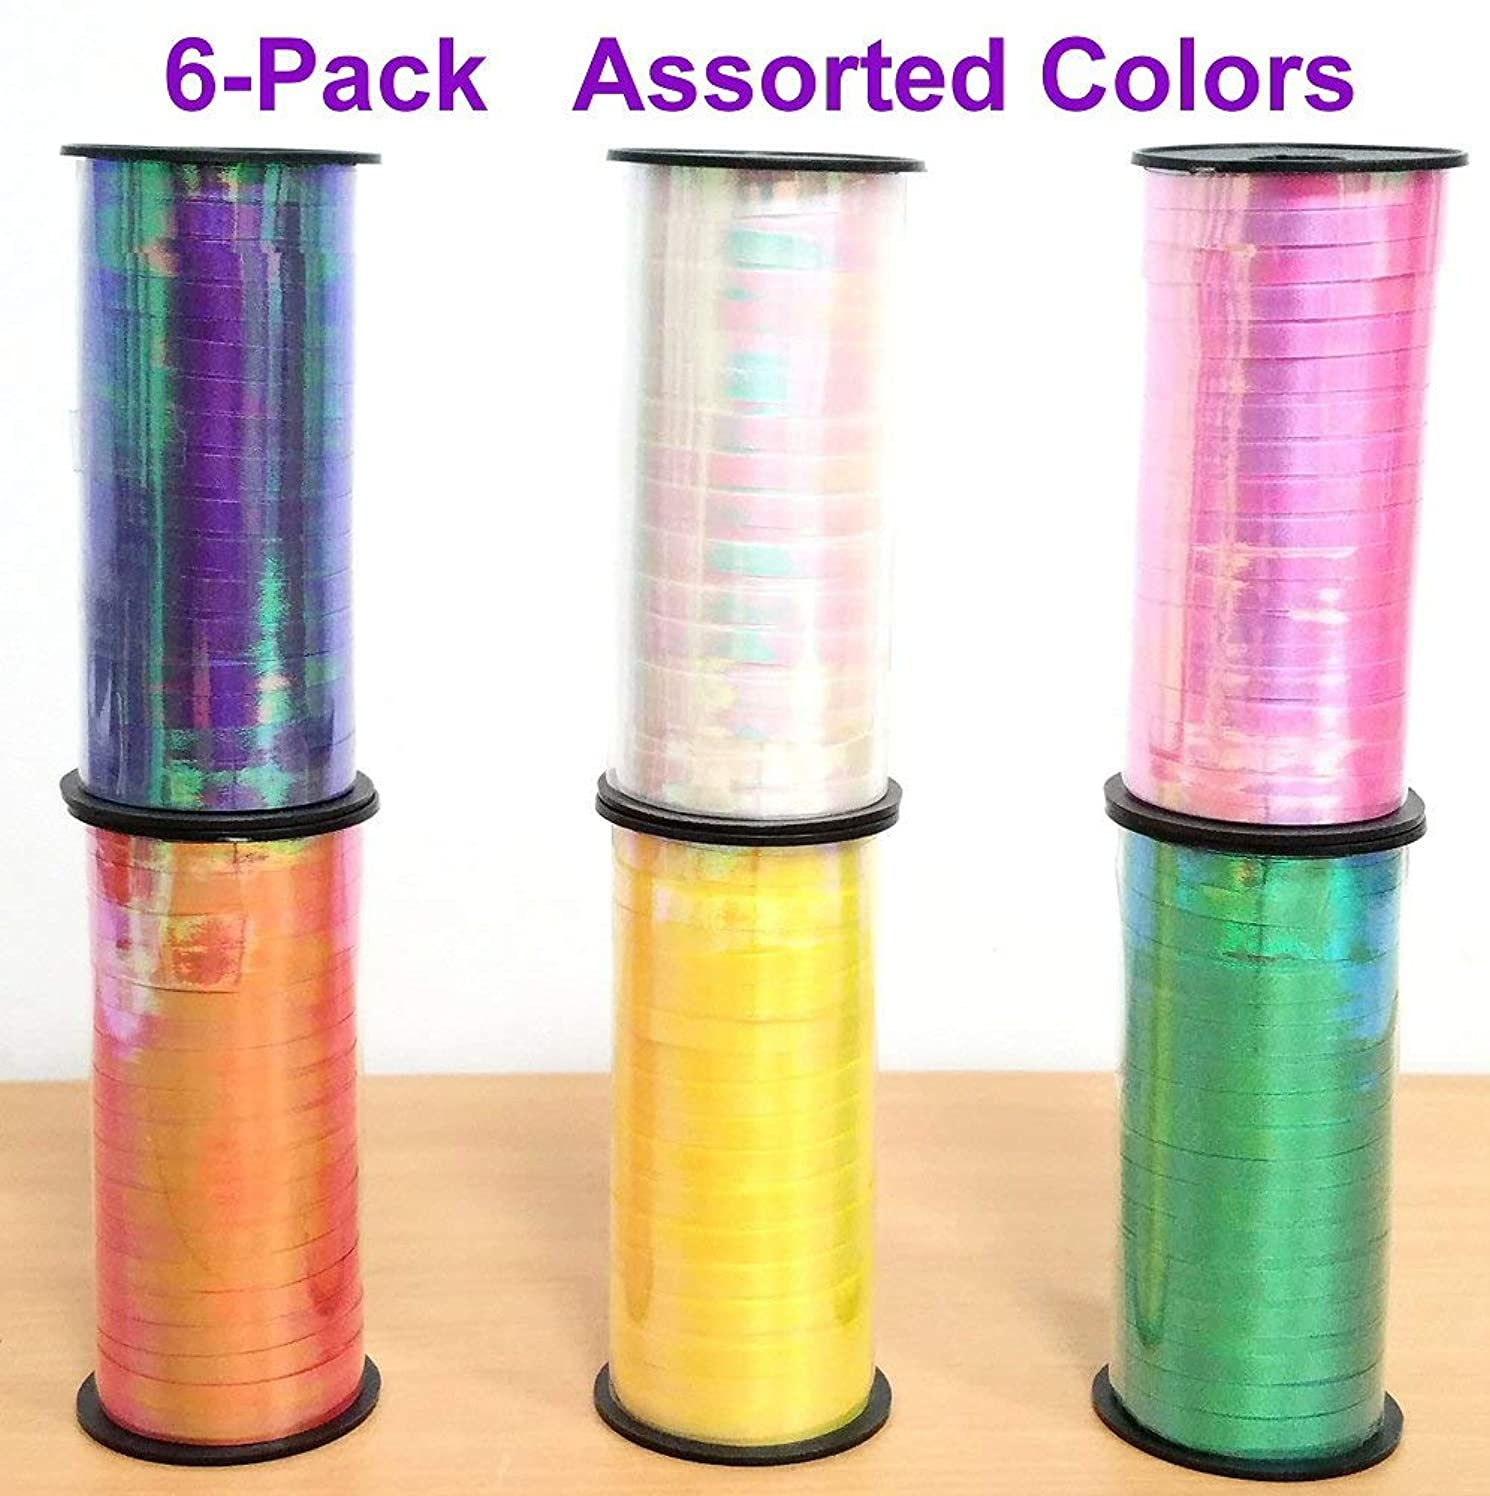 Iridescent Curling Ribbon 6-Pack, uncrimped, for Party Decoration, Wedding, Birthday, Craft, Flowers, Gift Wrapping. 100 Yard per roll in Assorted Colors - Colors May Vary